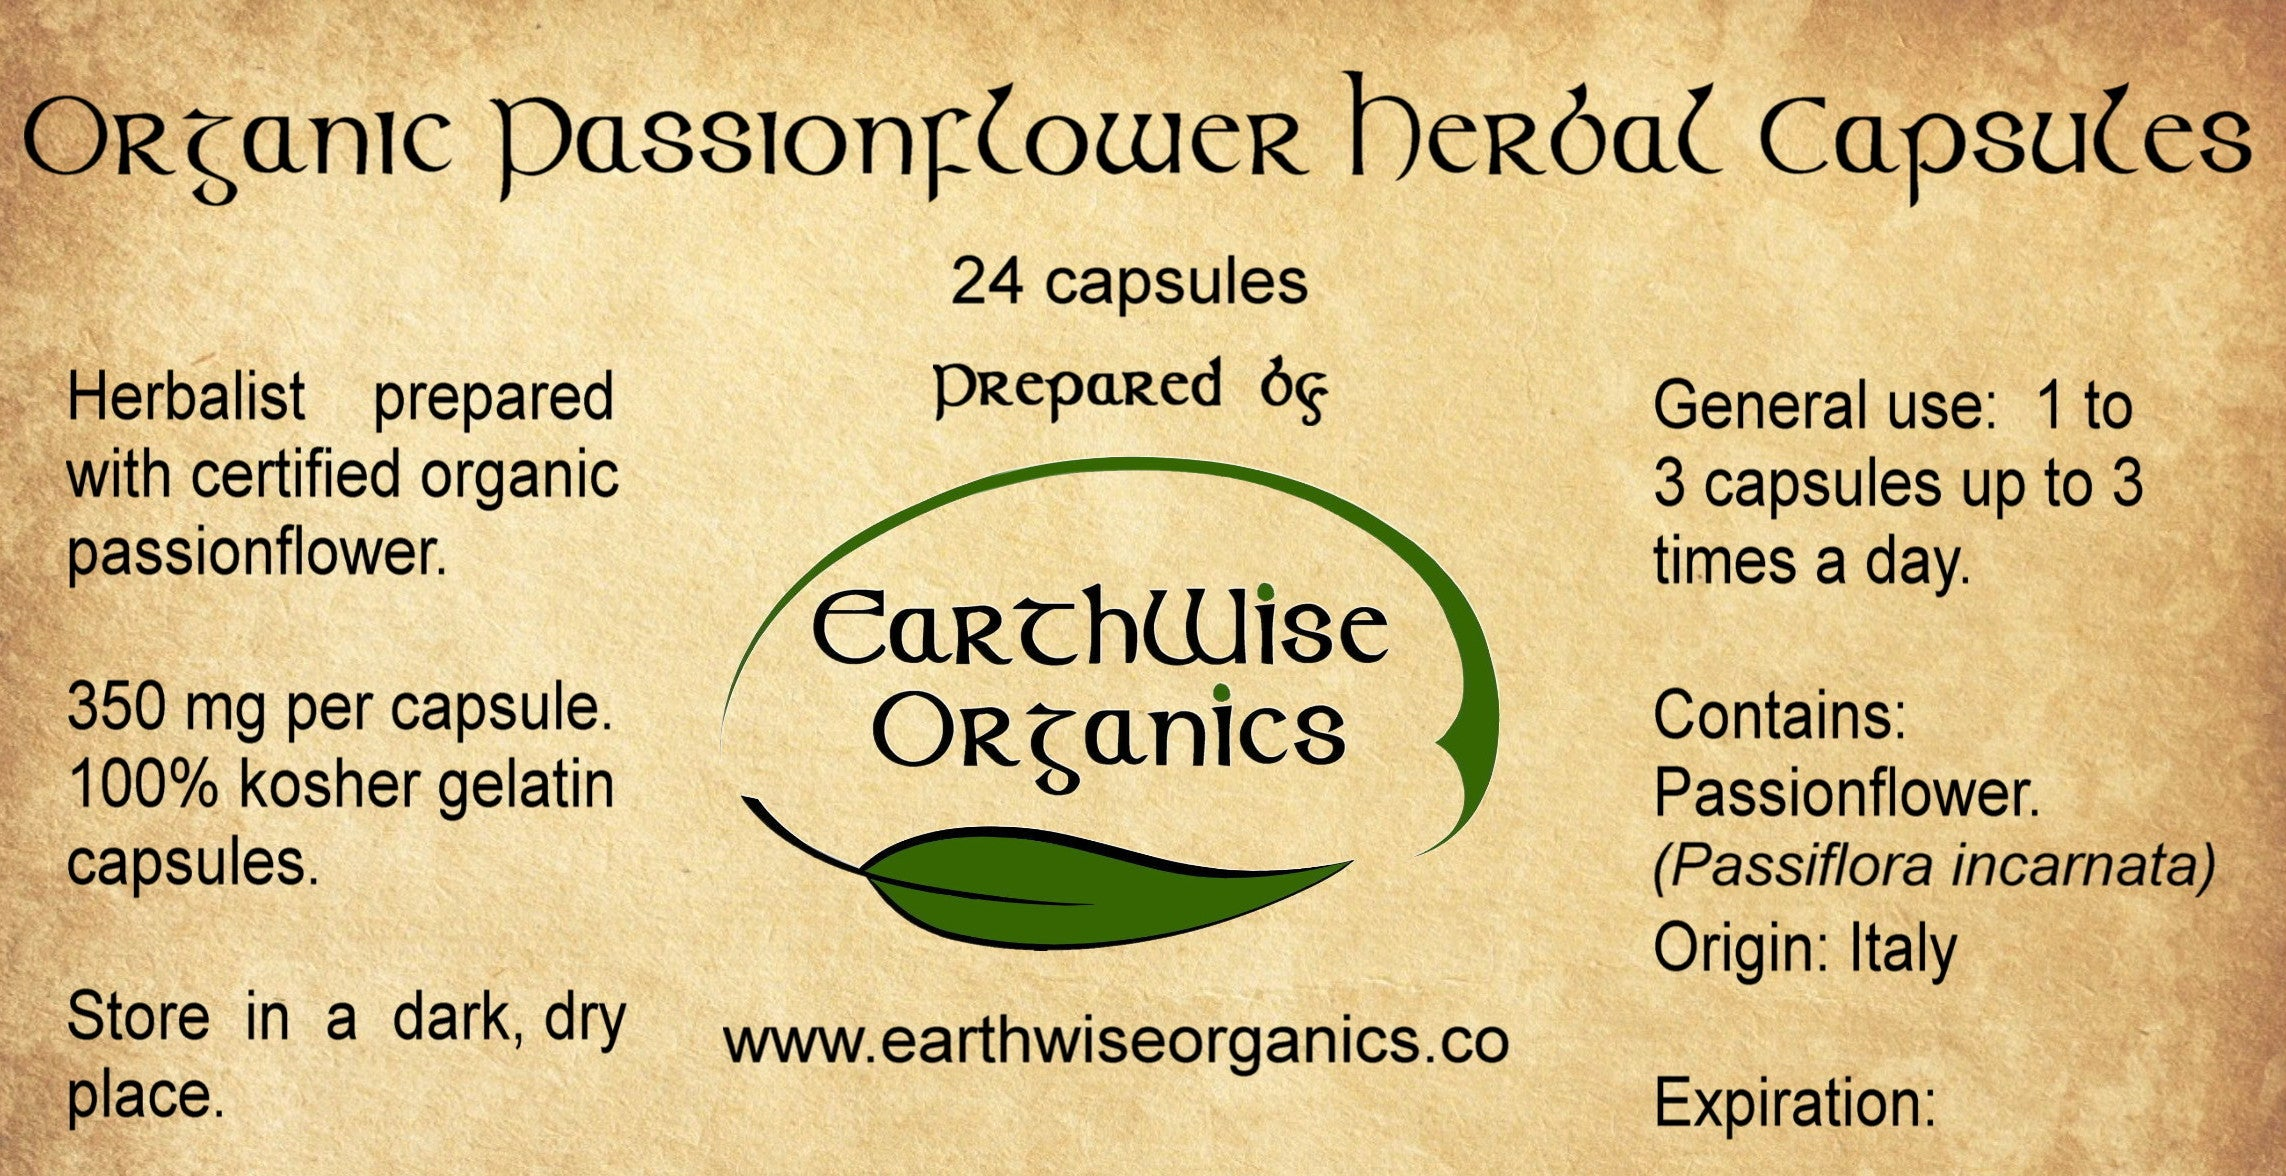 Passionflower organic herbal capsules label